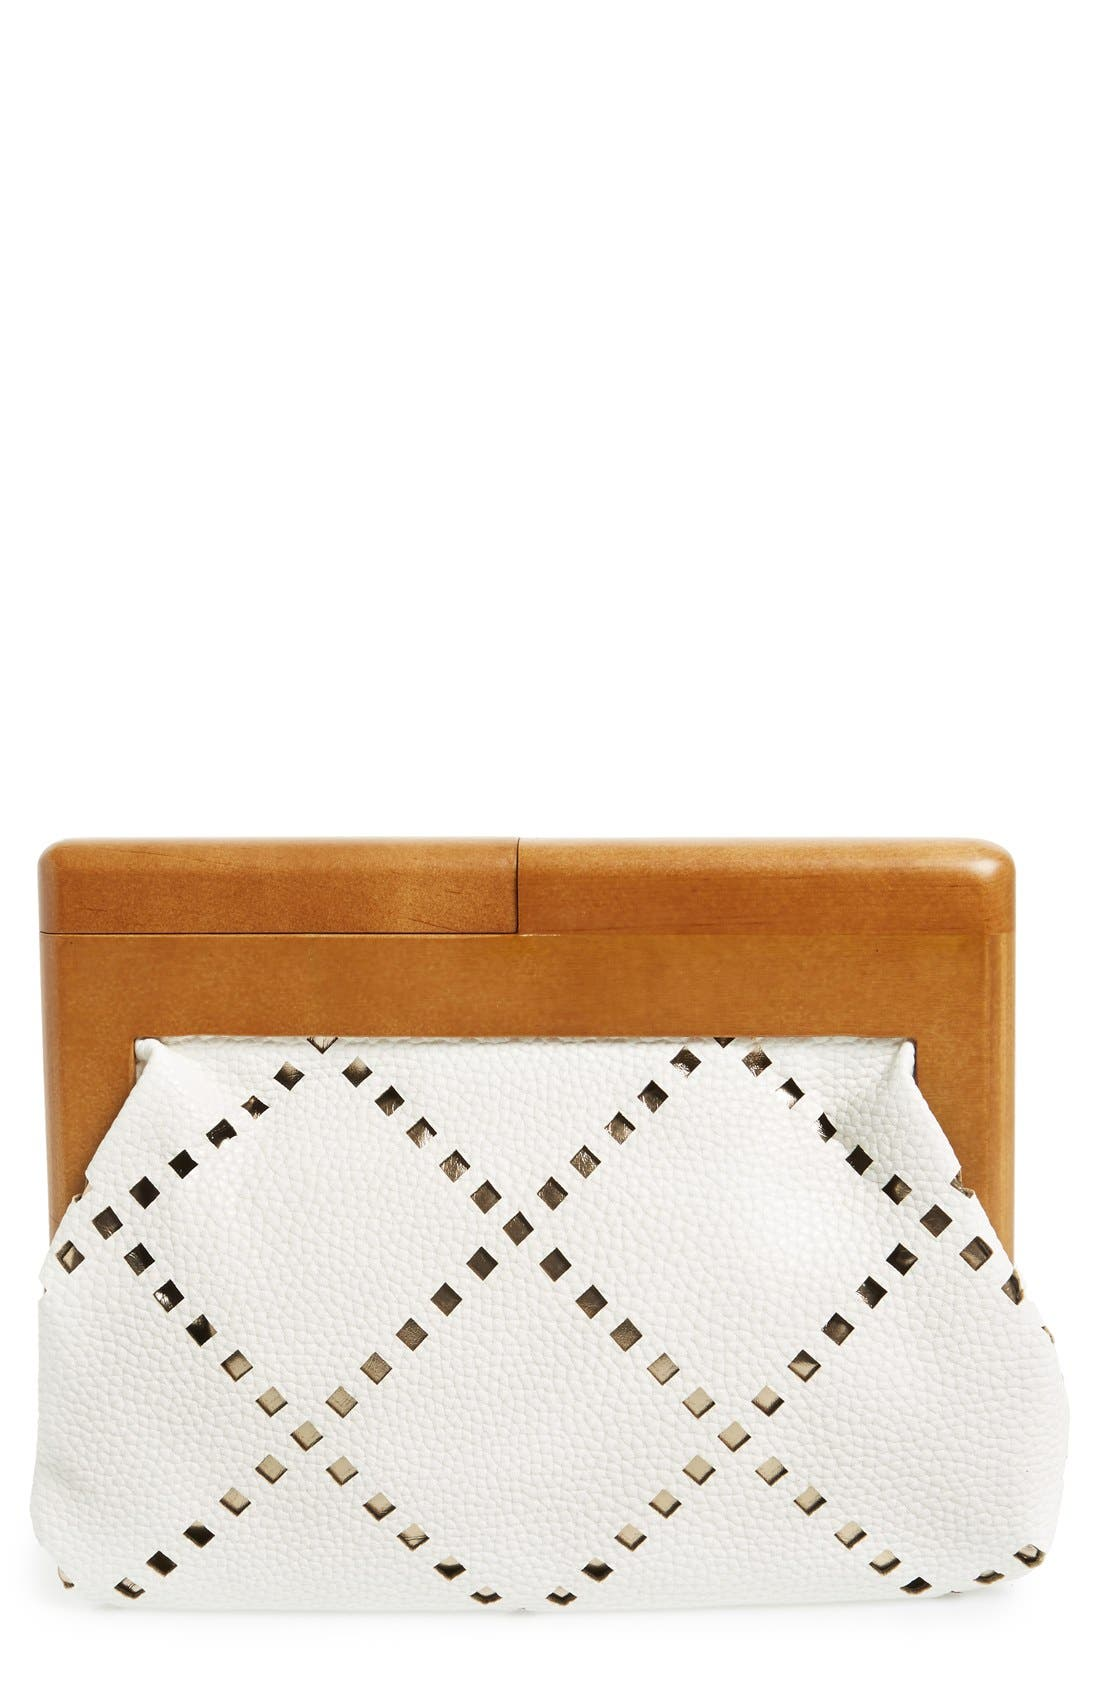 Perforated Faux Leather Frame Clutch,                         Main,                         color, White